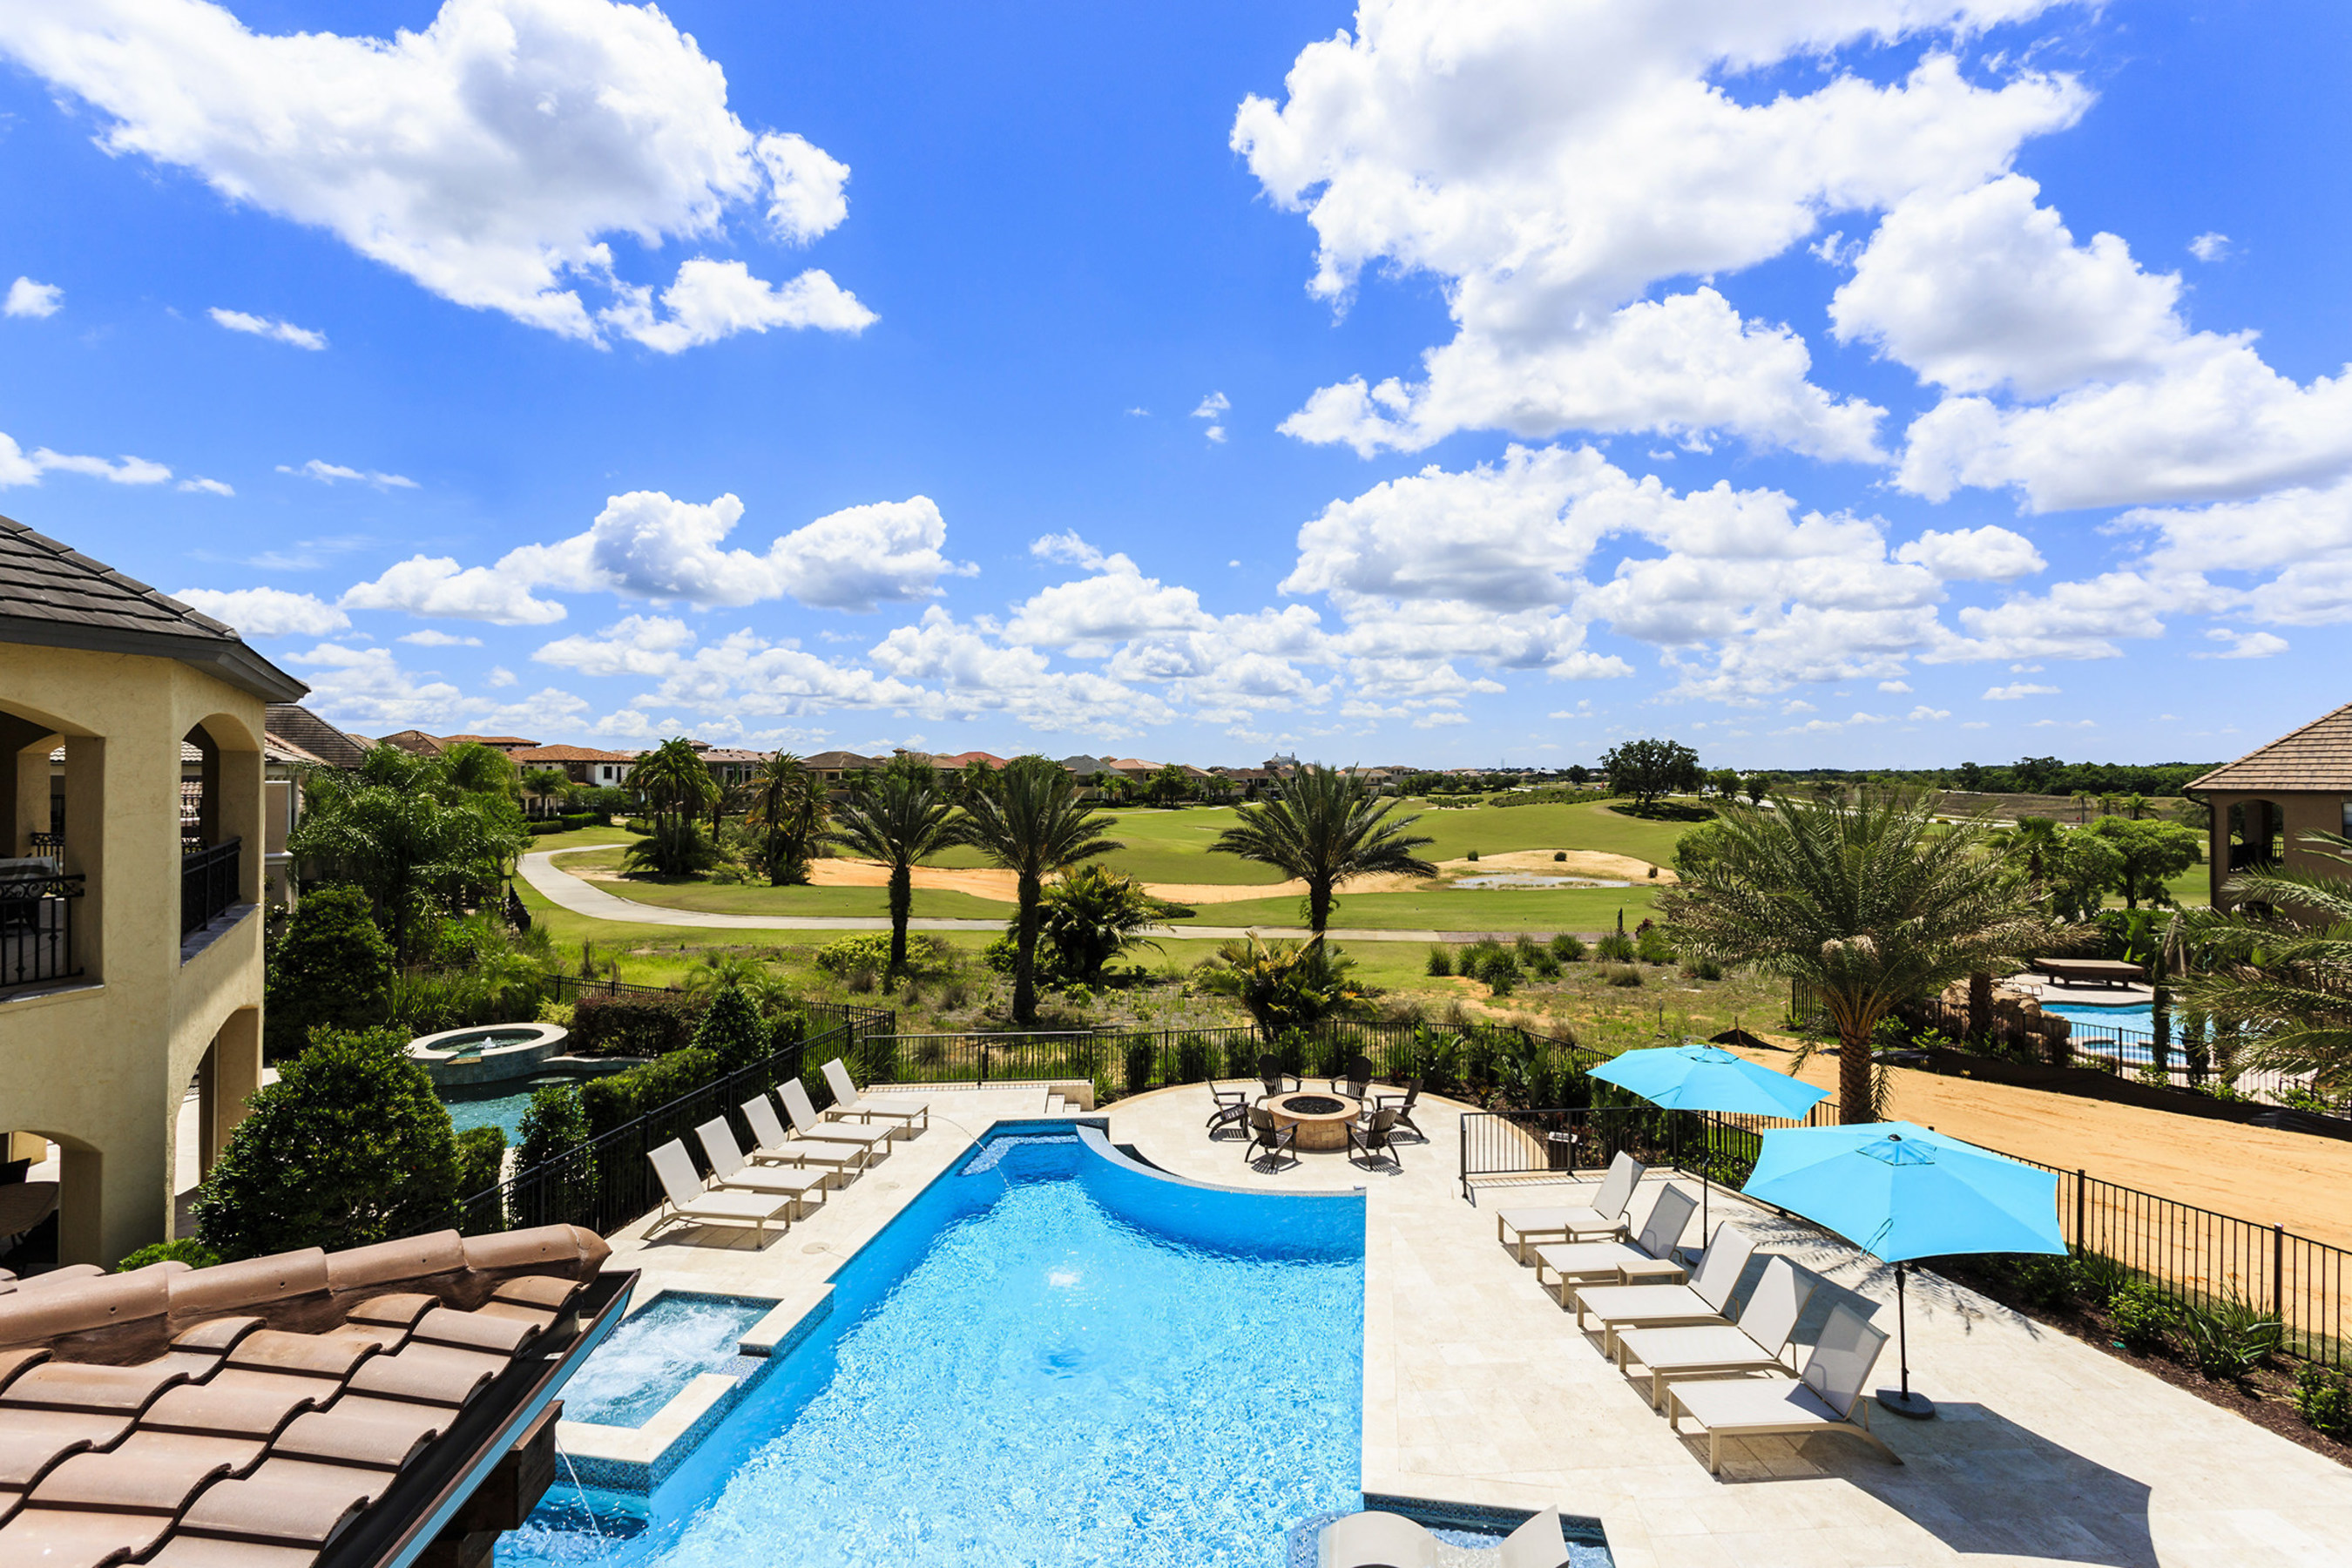 Luxury Retreats, Global Leader in Luxury Rental Villas, Adds Orlando, Florida to its Portfolio, with Handpicked Homes, Complimentary Concierge, 24seven Guest Services